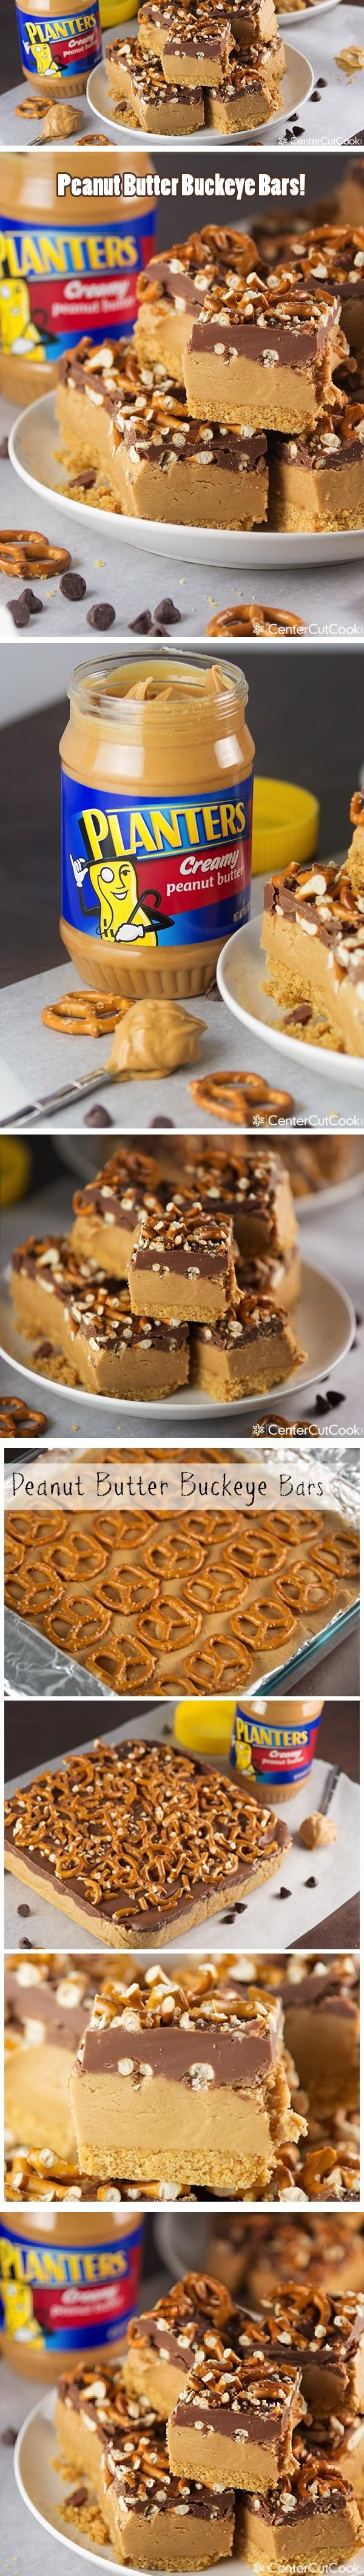 PEANUT BUTTER BUCKEYE BARS with Pretzels combine sweet with salty in this no bake dessert bar that kids and adults will love!